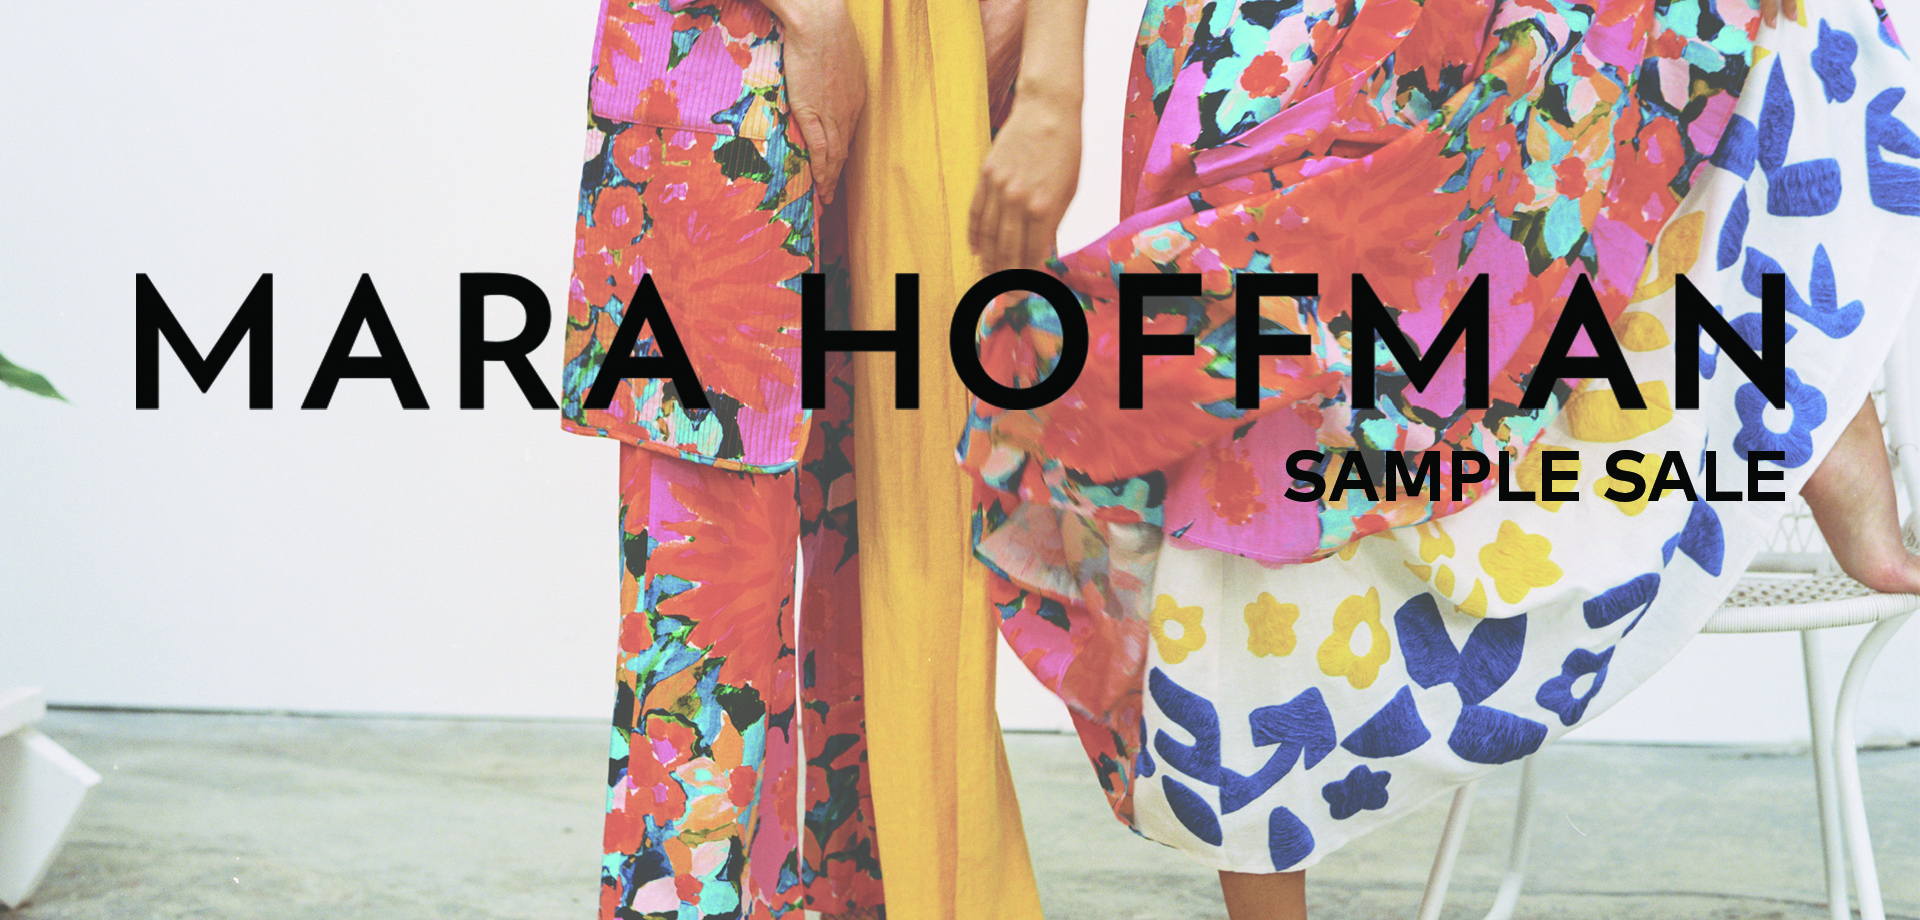 BANNER_Mara-Hoffman-Sample-Sale_260LA_June-19.jpg